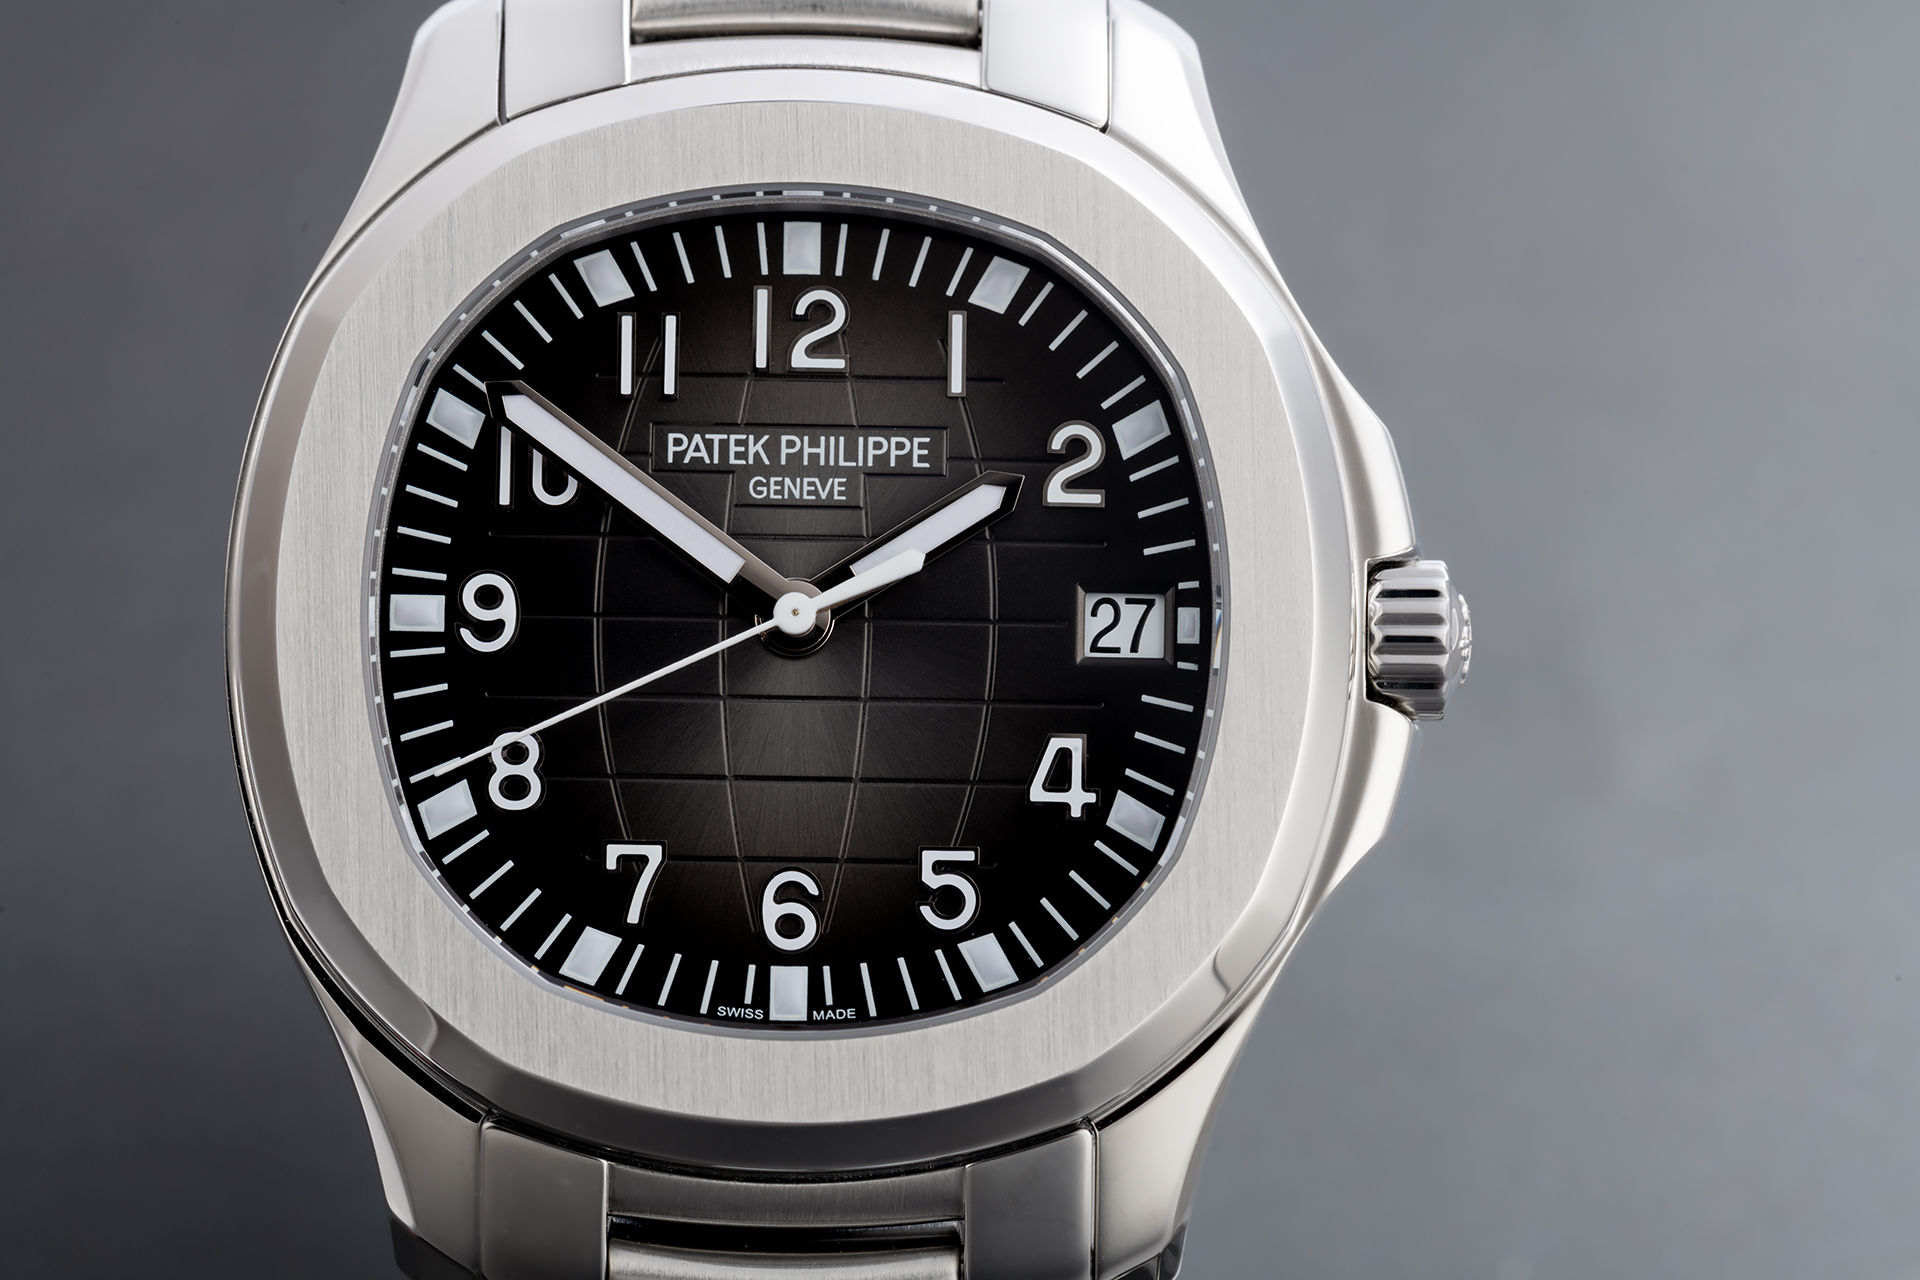 ref 5167/1A-001 | 'Jumbo' Patek Warranty to 2022 | Patek Philippe Aquanaut